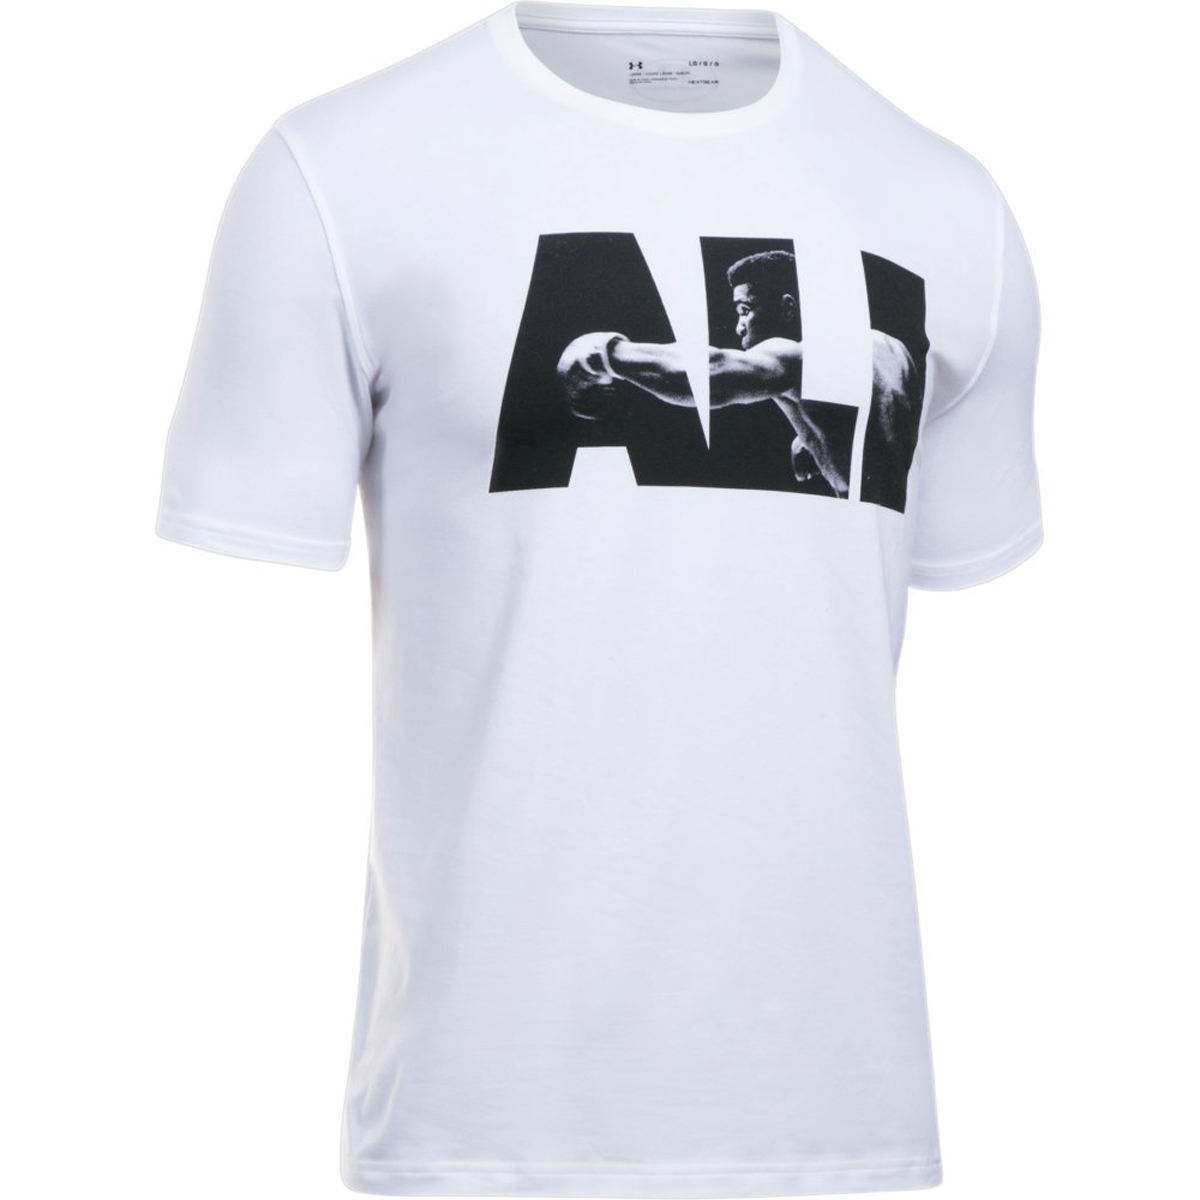 Under-Armour-Mens-UA-Ali-Rumble-Jab-Muhammad-